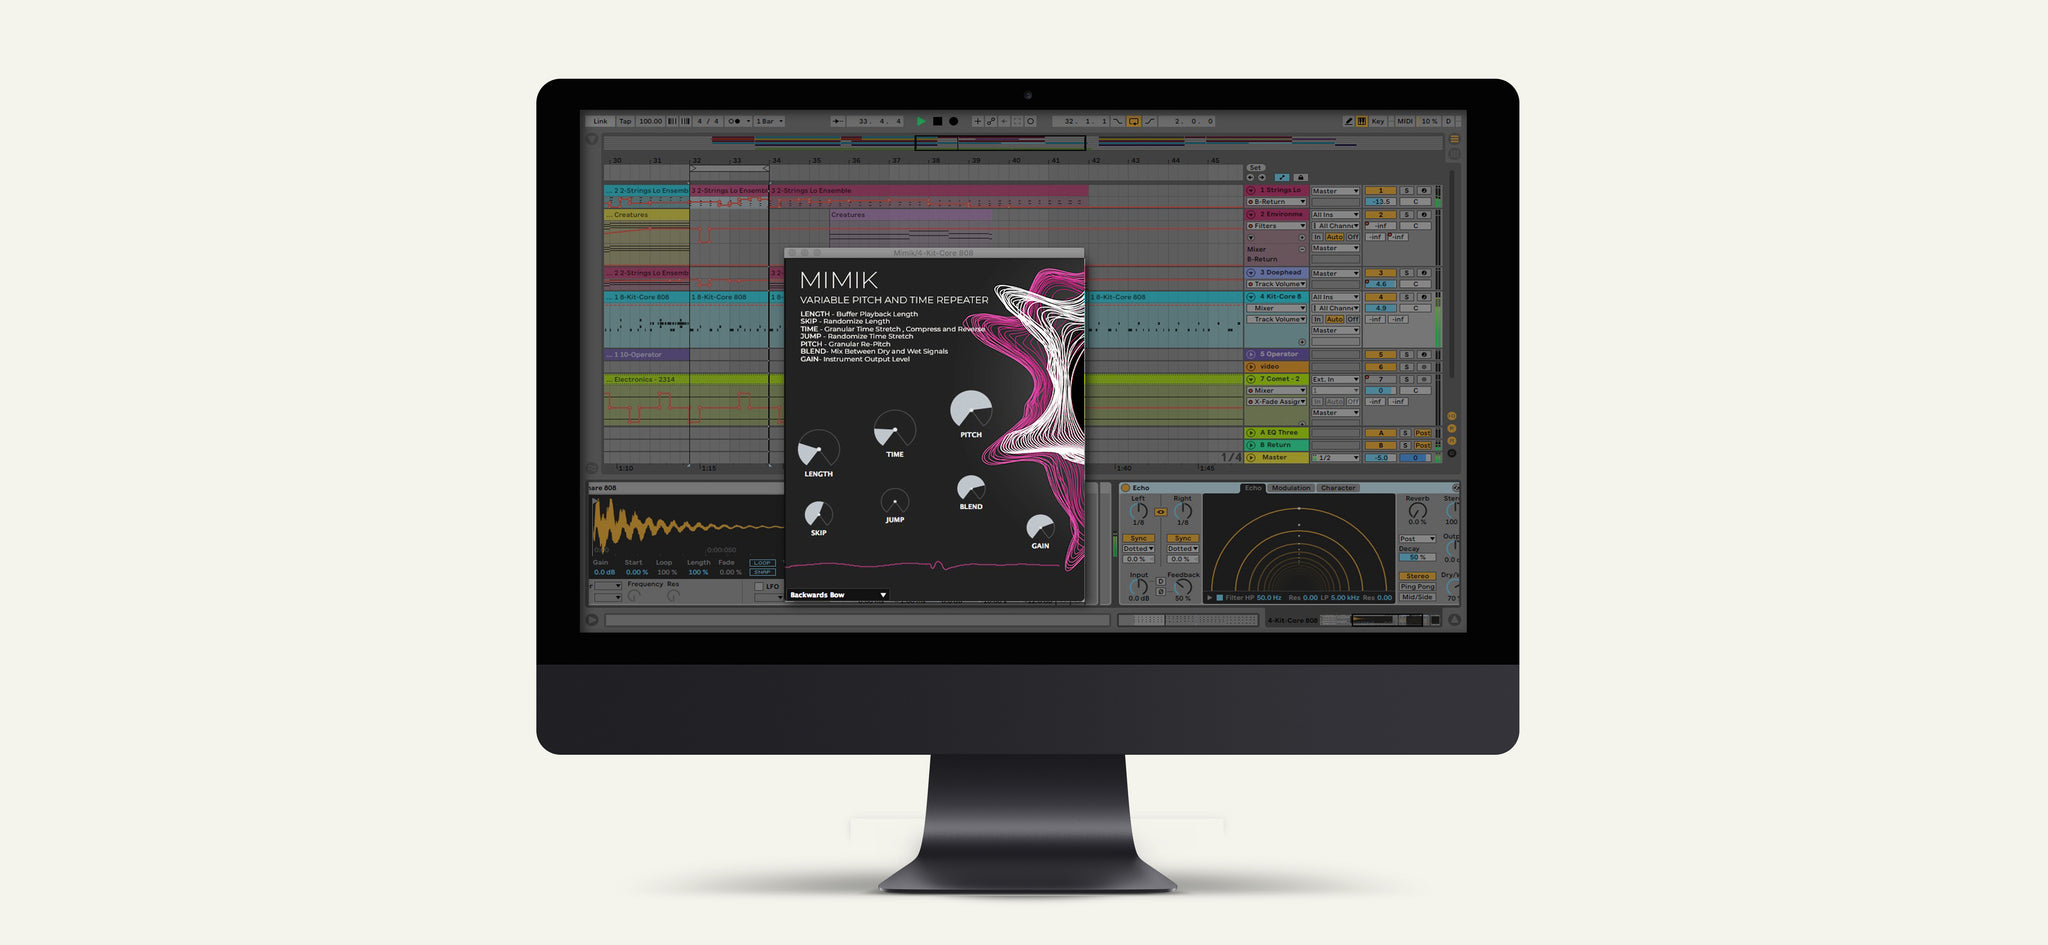 Mimik - Timestretch in Ableton Live